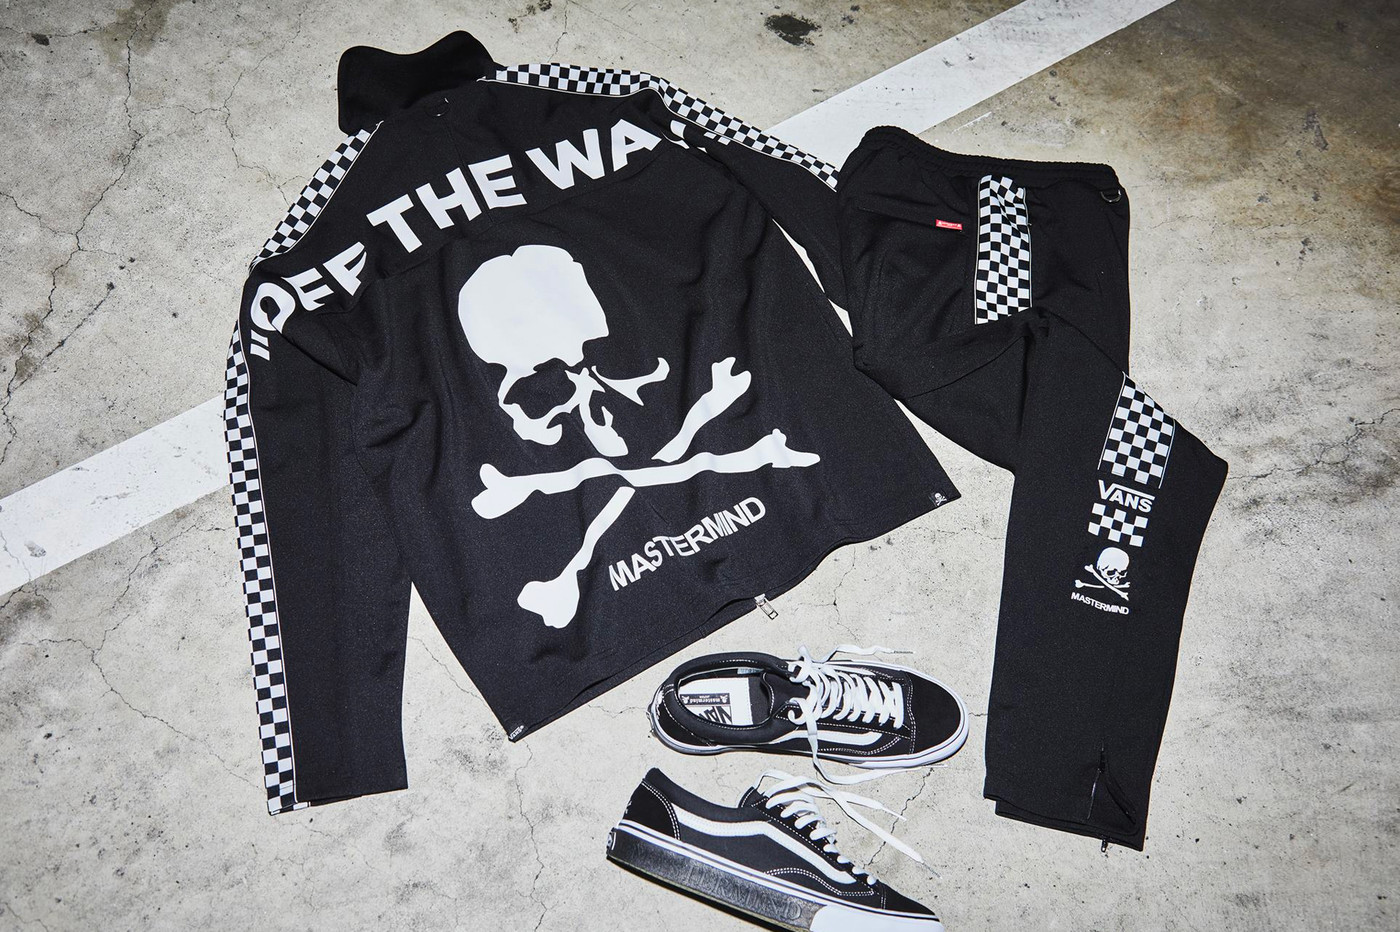 7a98a0c1a0 mastermind JAPAN and Vans build upon their storied partnership with a new  capsule collection due out at month s end. Granted a sneak peek at the ...